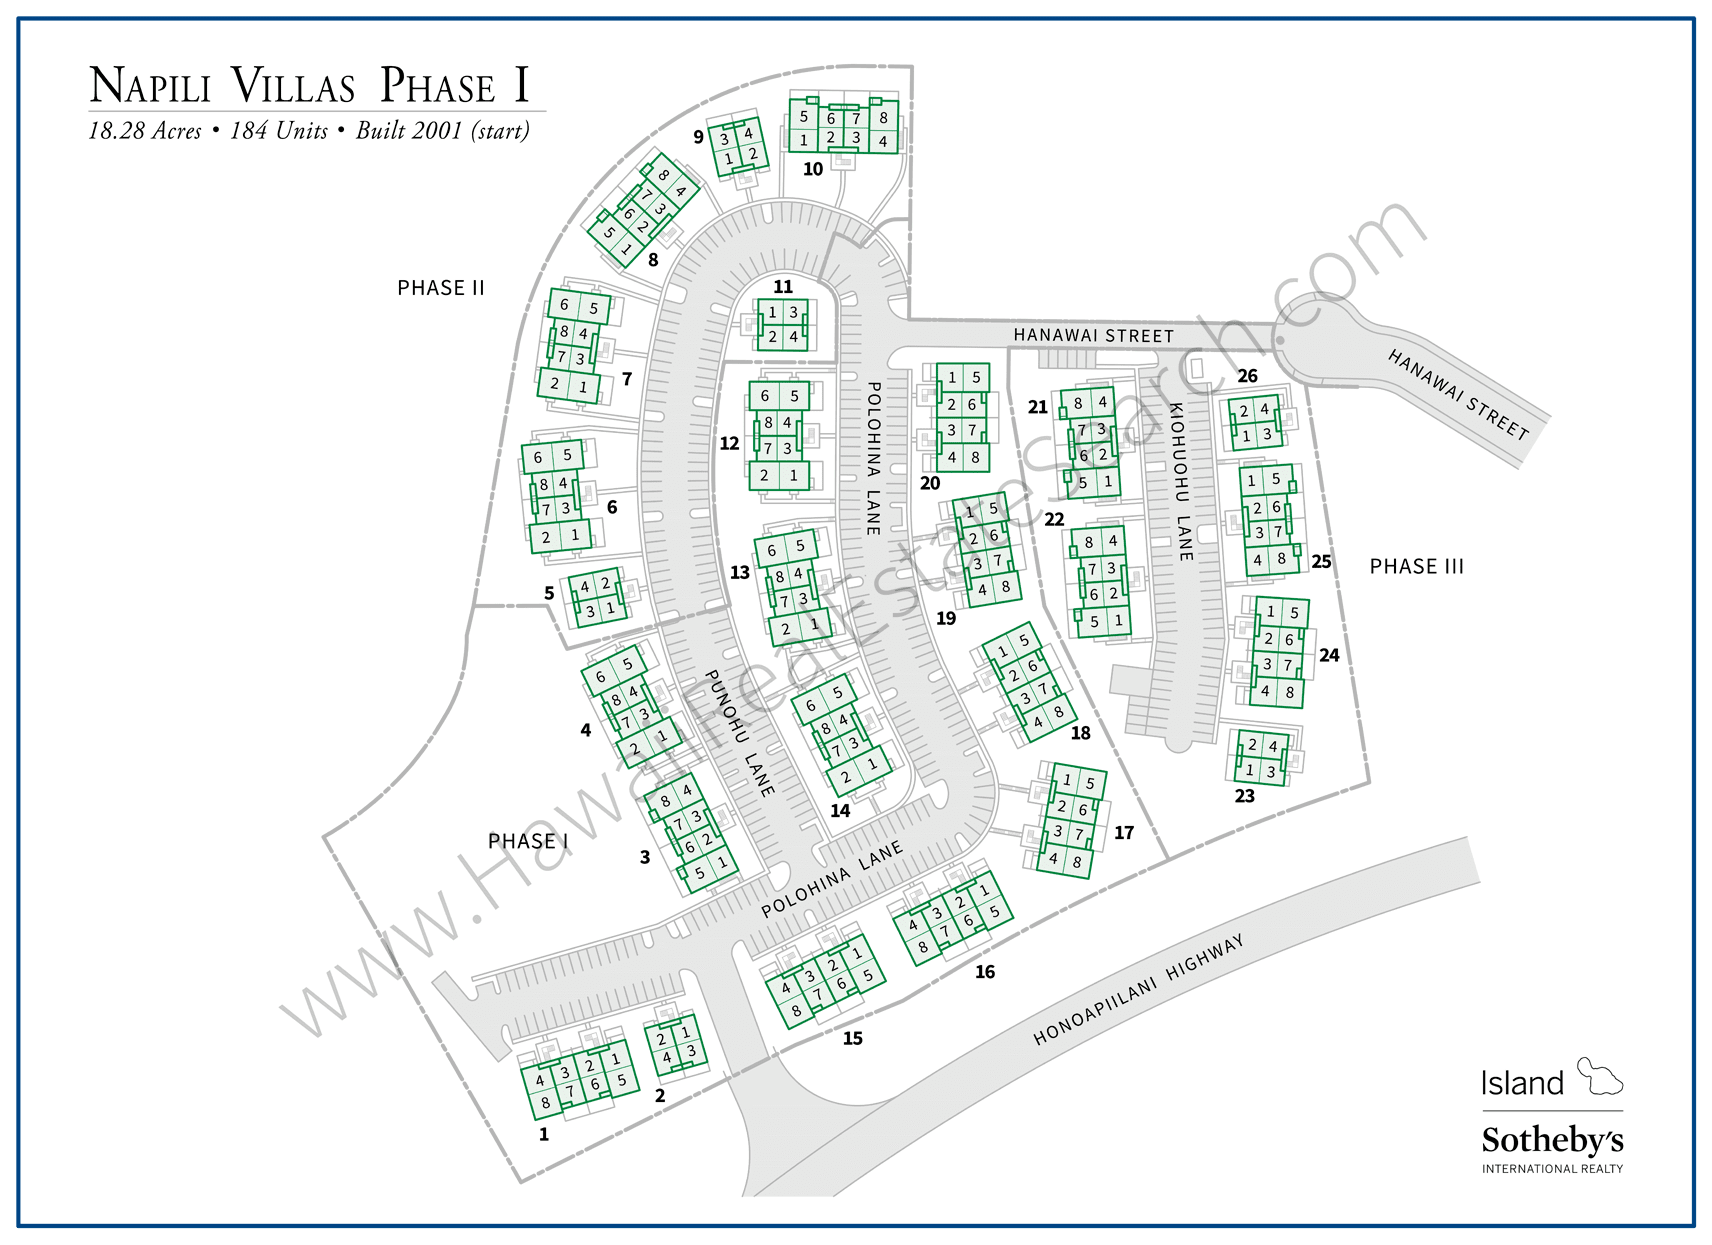 Napili Villas Property Map Updated